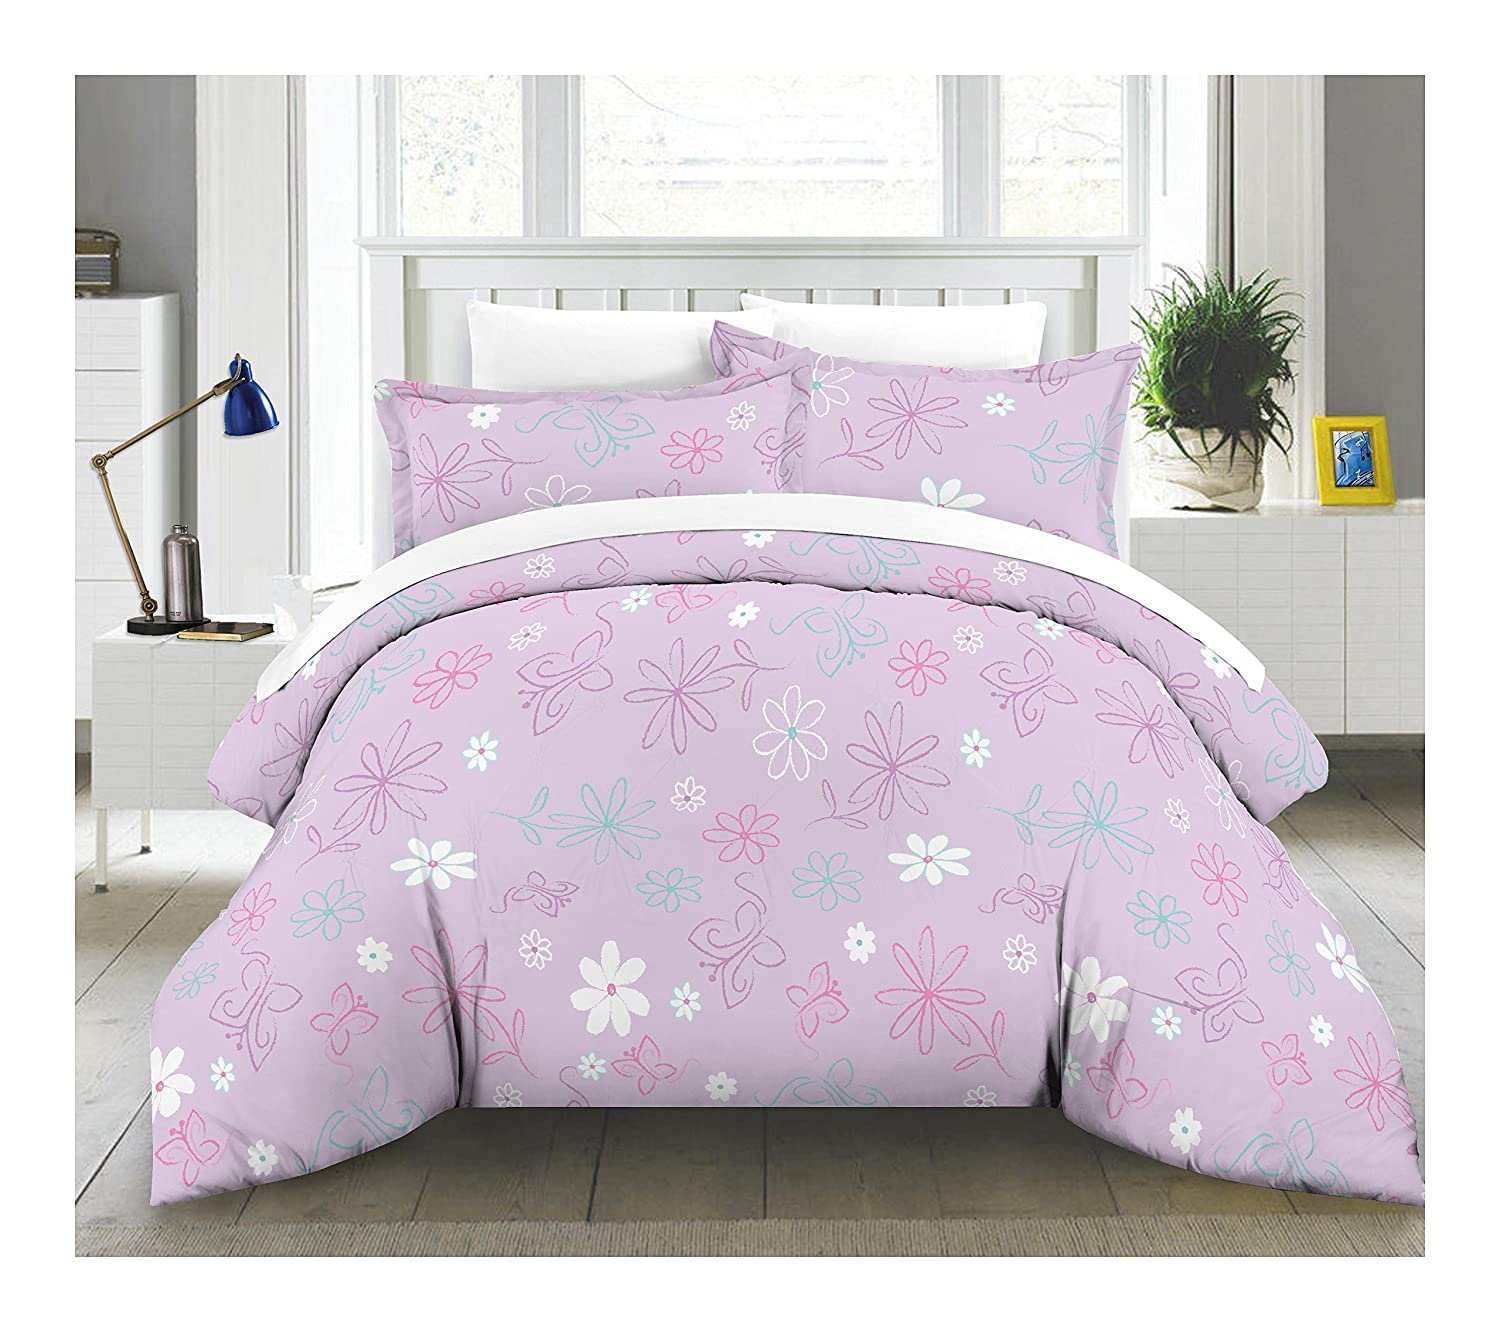 com bag mainstays floral butterfly walmart bedding comforter kids in a set ip bed